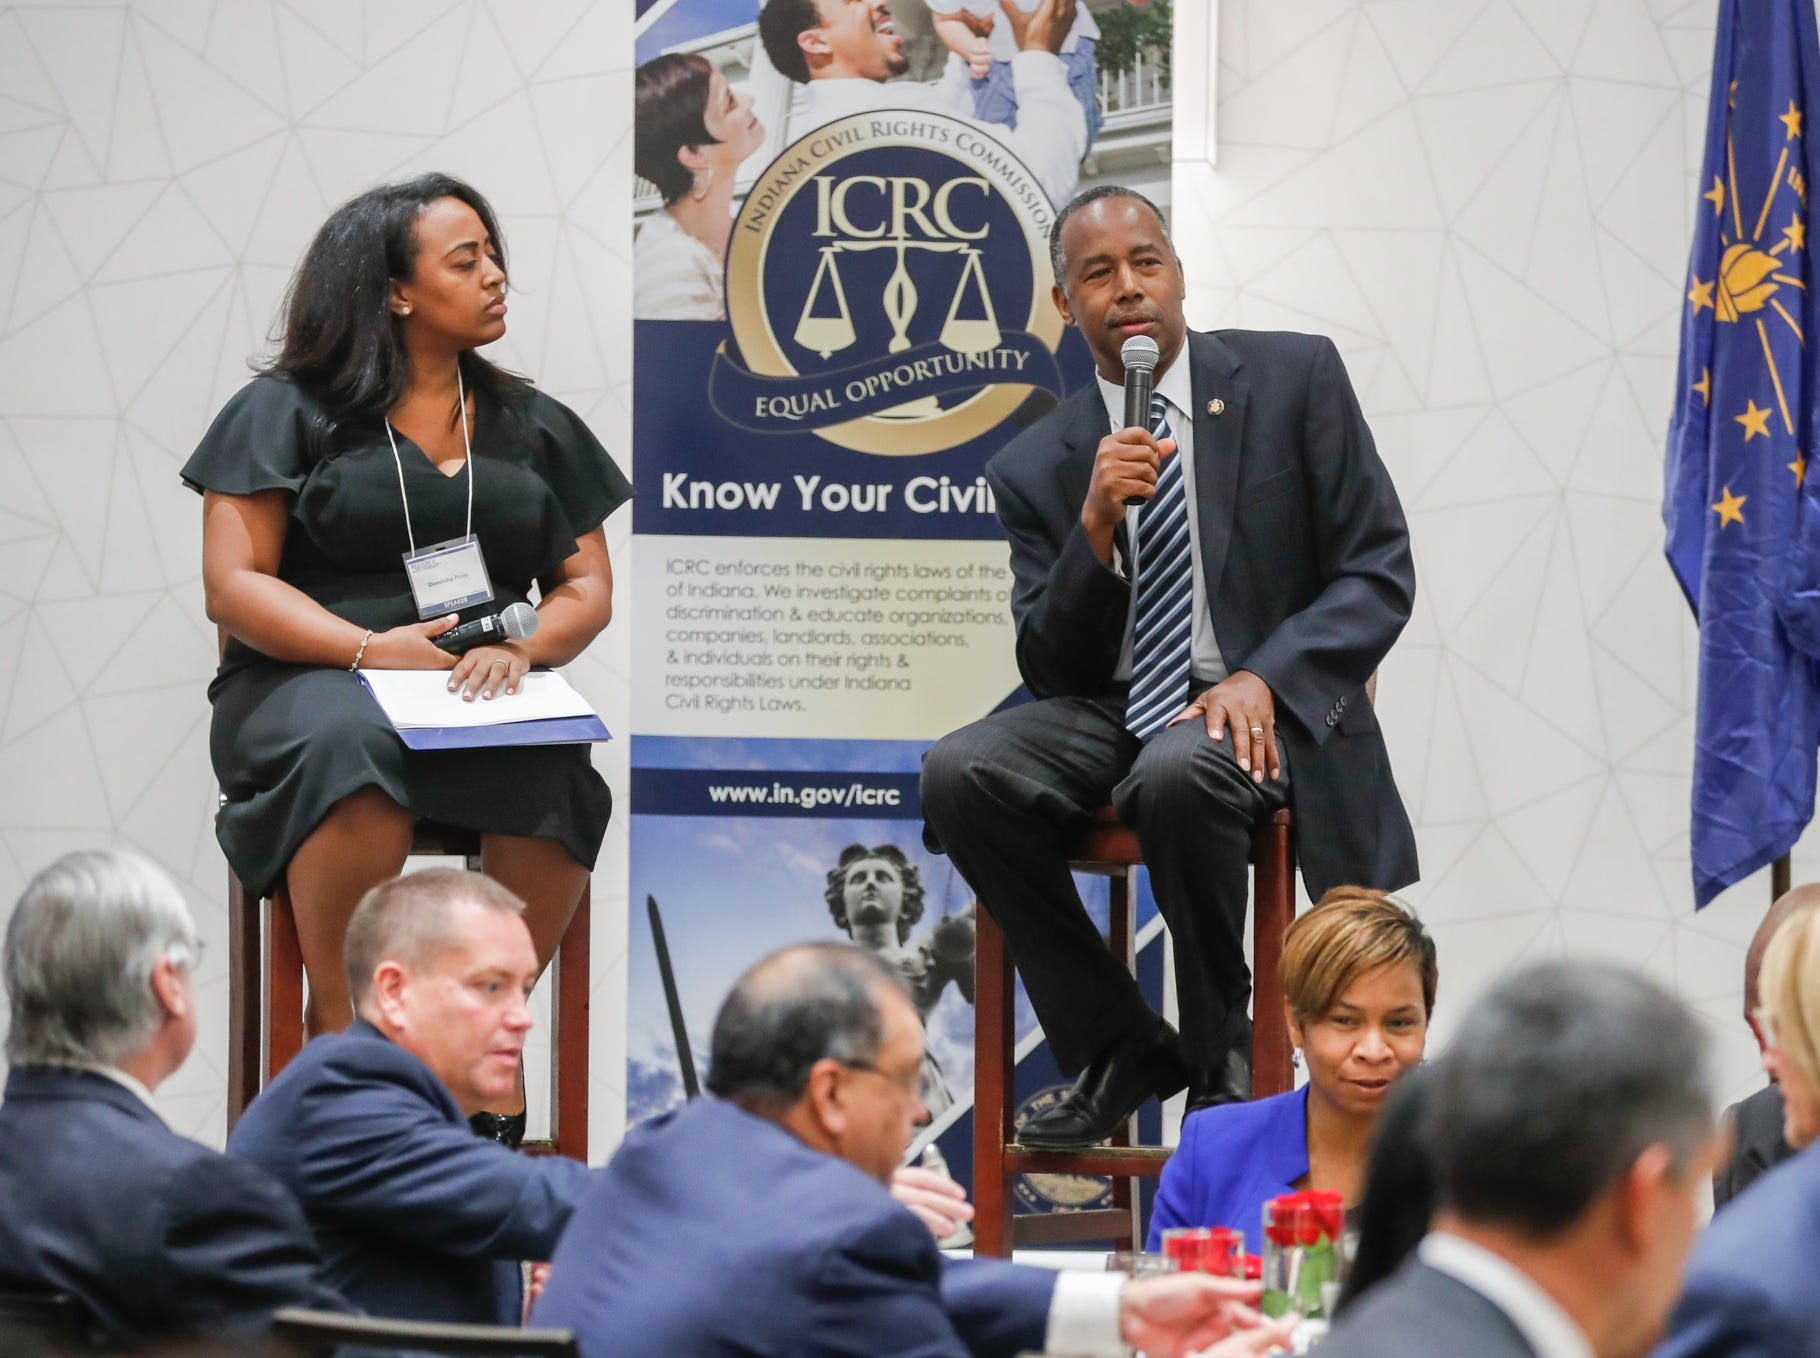 Deputy Director and General Council for the Indiana Civil Rights Commission, Doneisha Posey, left, and HUD Secretary Ben Carson, right, takes submitted questions after Carson's Keynote speech during the Indiana Civil Rights Commission's Fair Housing Law and Policy Conference, held at the     Sheraton Indianapolis City Centre Hotel on Wednesday, Oct. 10, 2018.